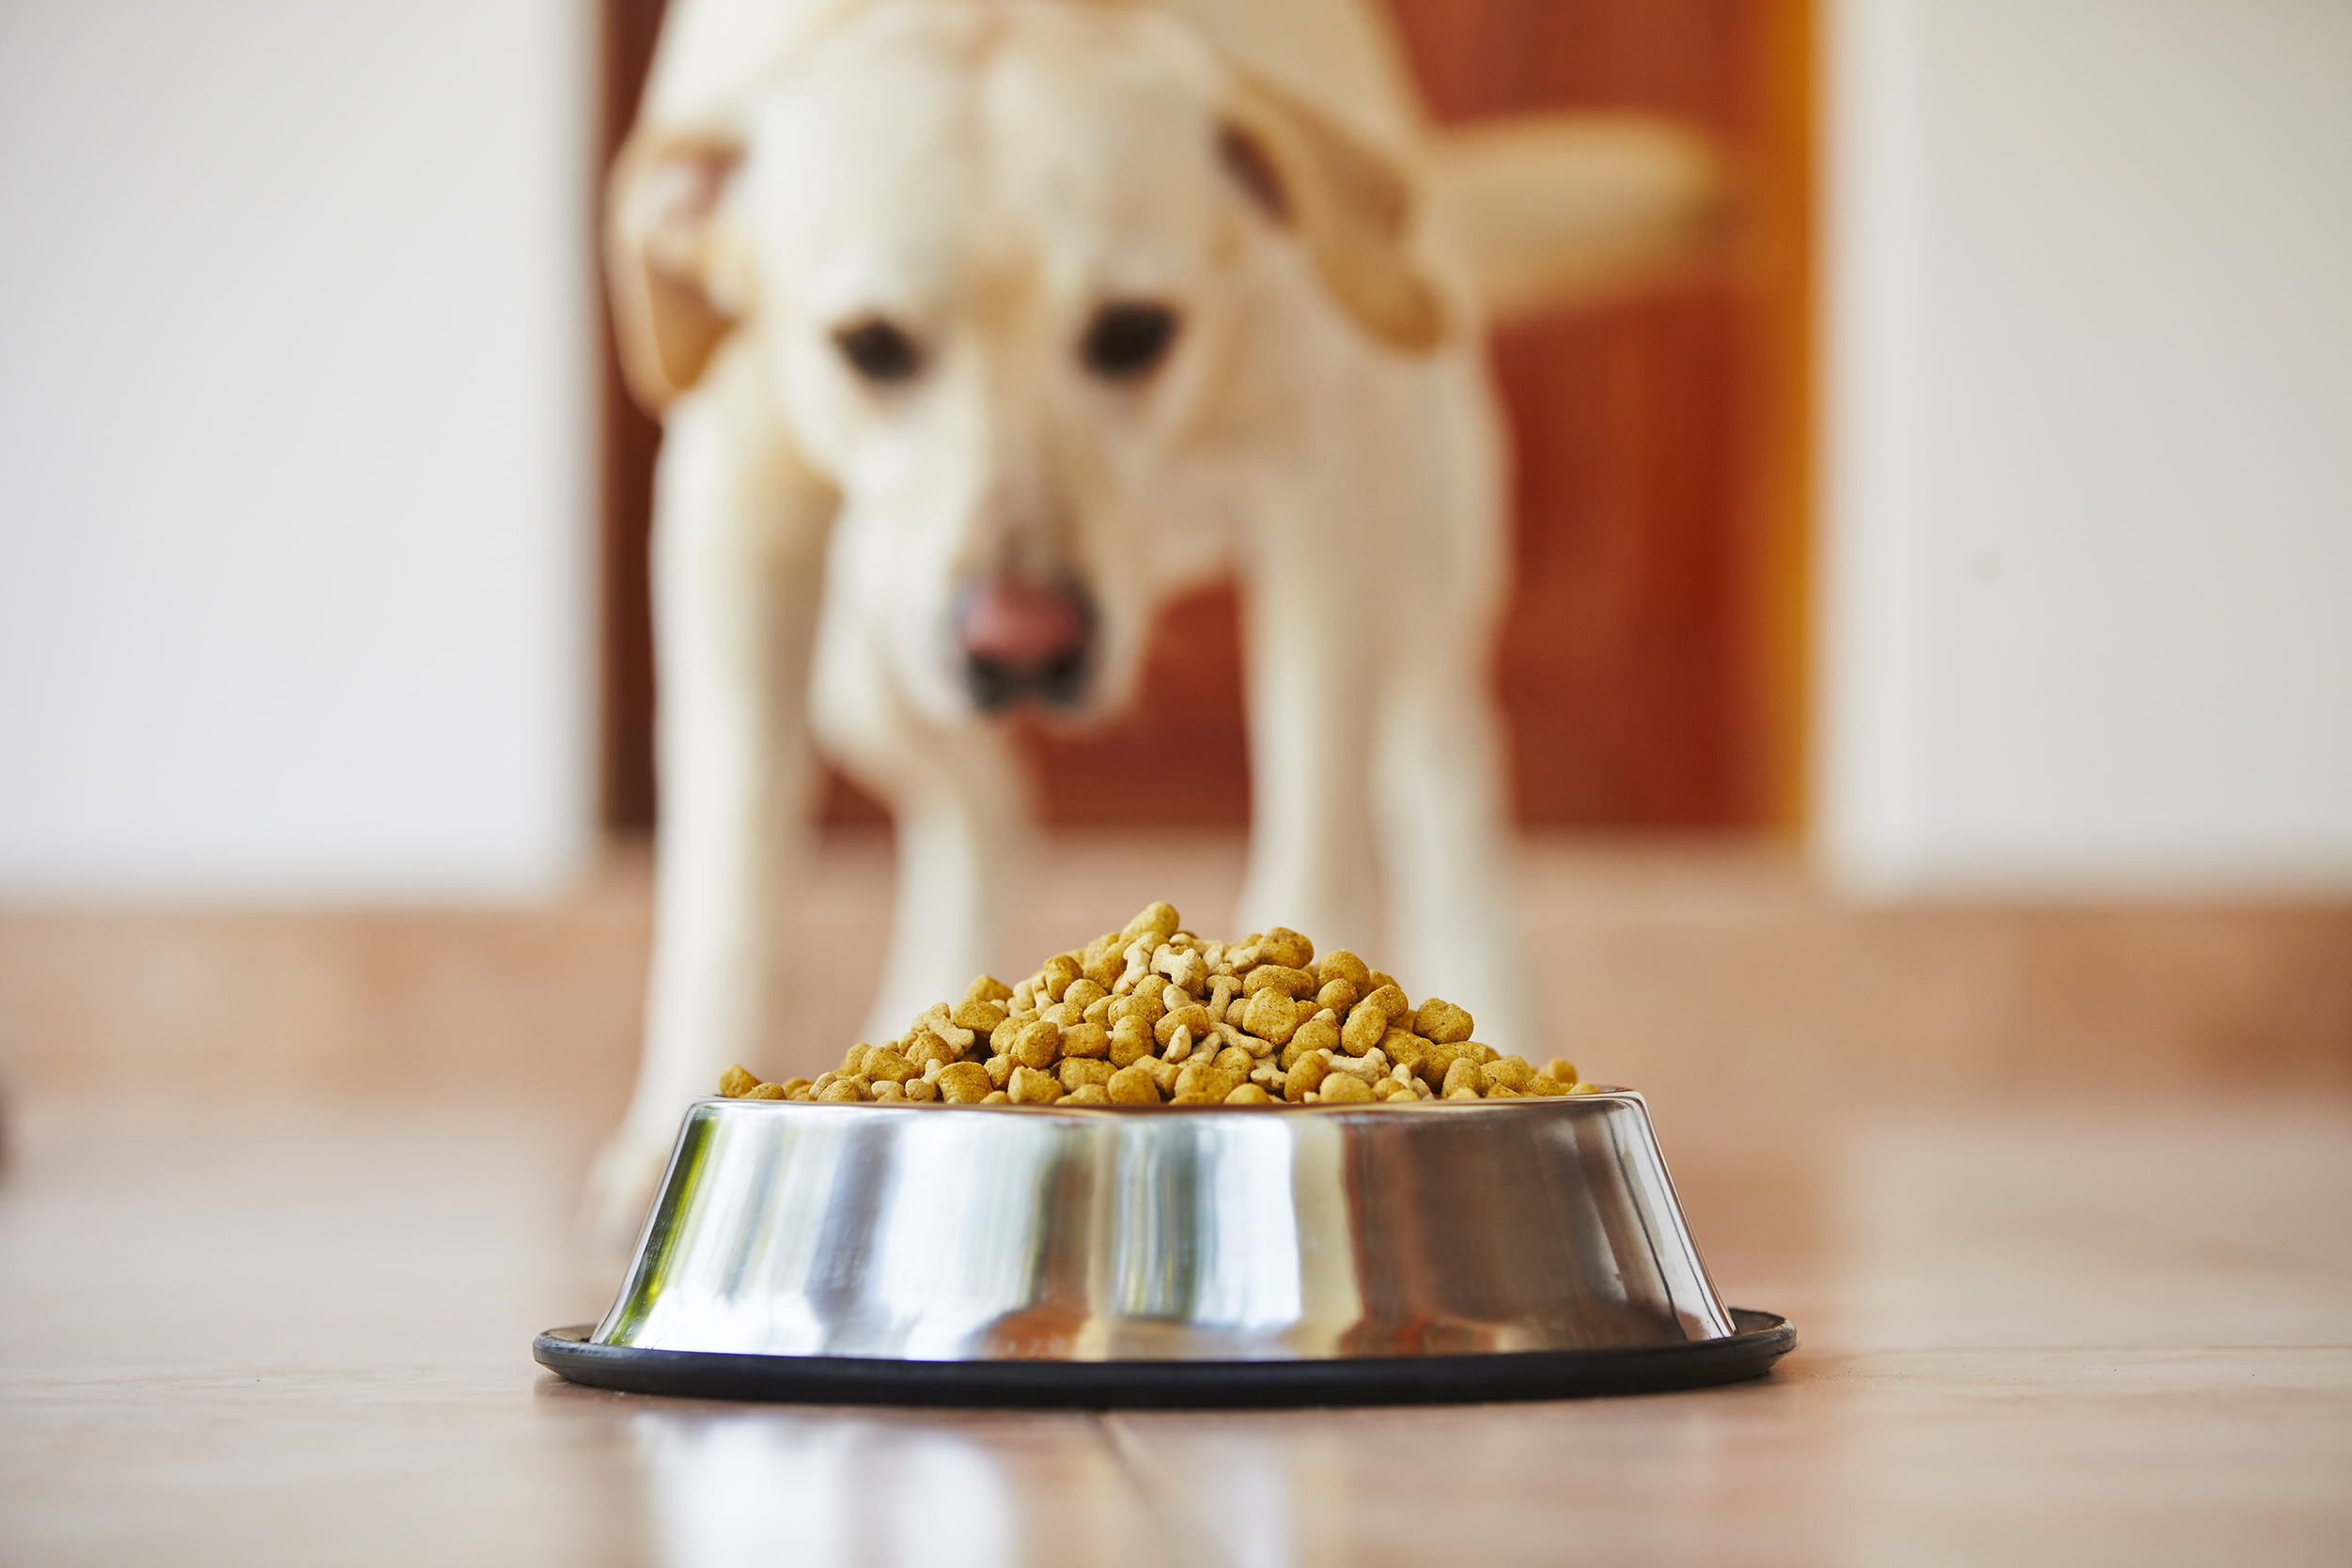 Report From CDC: Salmonella Outbreak May Include Pet Food